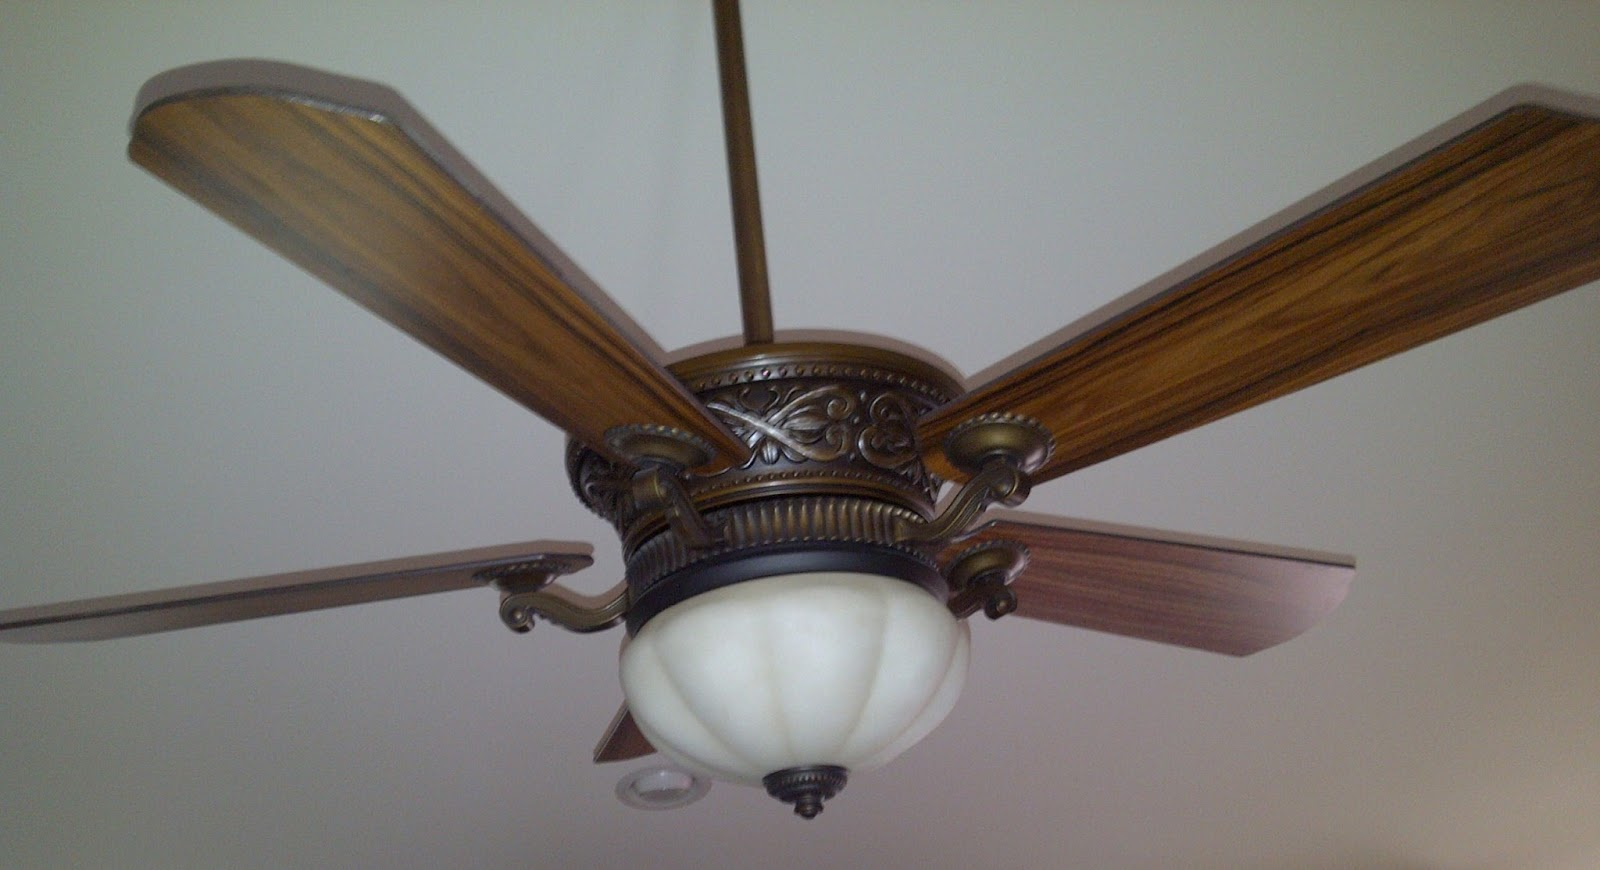 Harbor Breeze Ceiling Fan Installation Manual: Ceiling fan with no apparent way to reverse the fan direction,Lighting